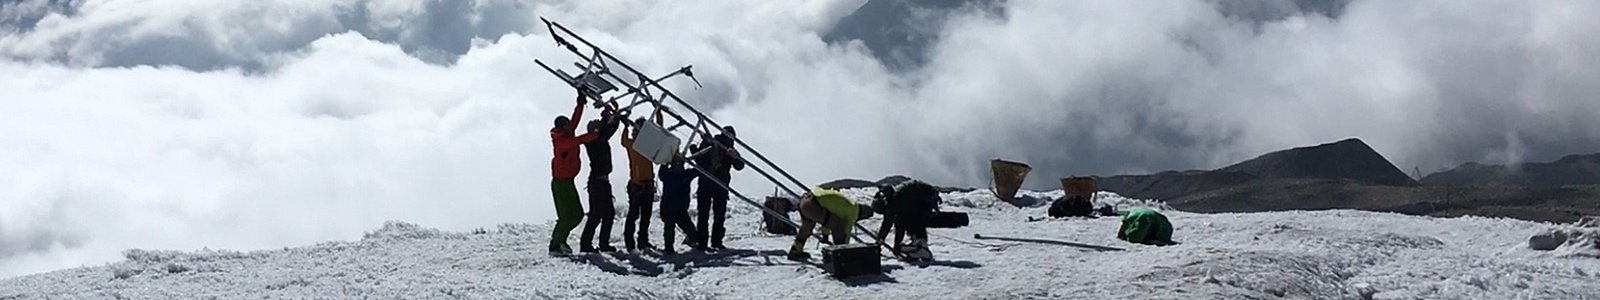 Researchers installing equipment on a snowy Himalaya mountain top